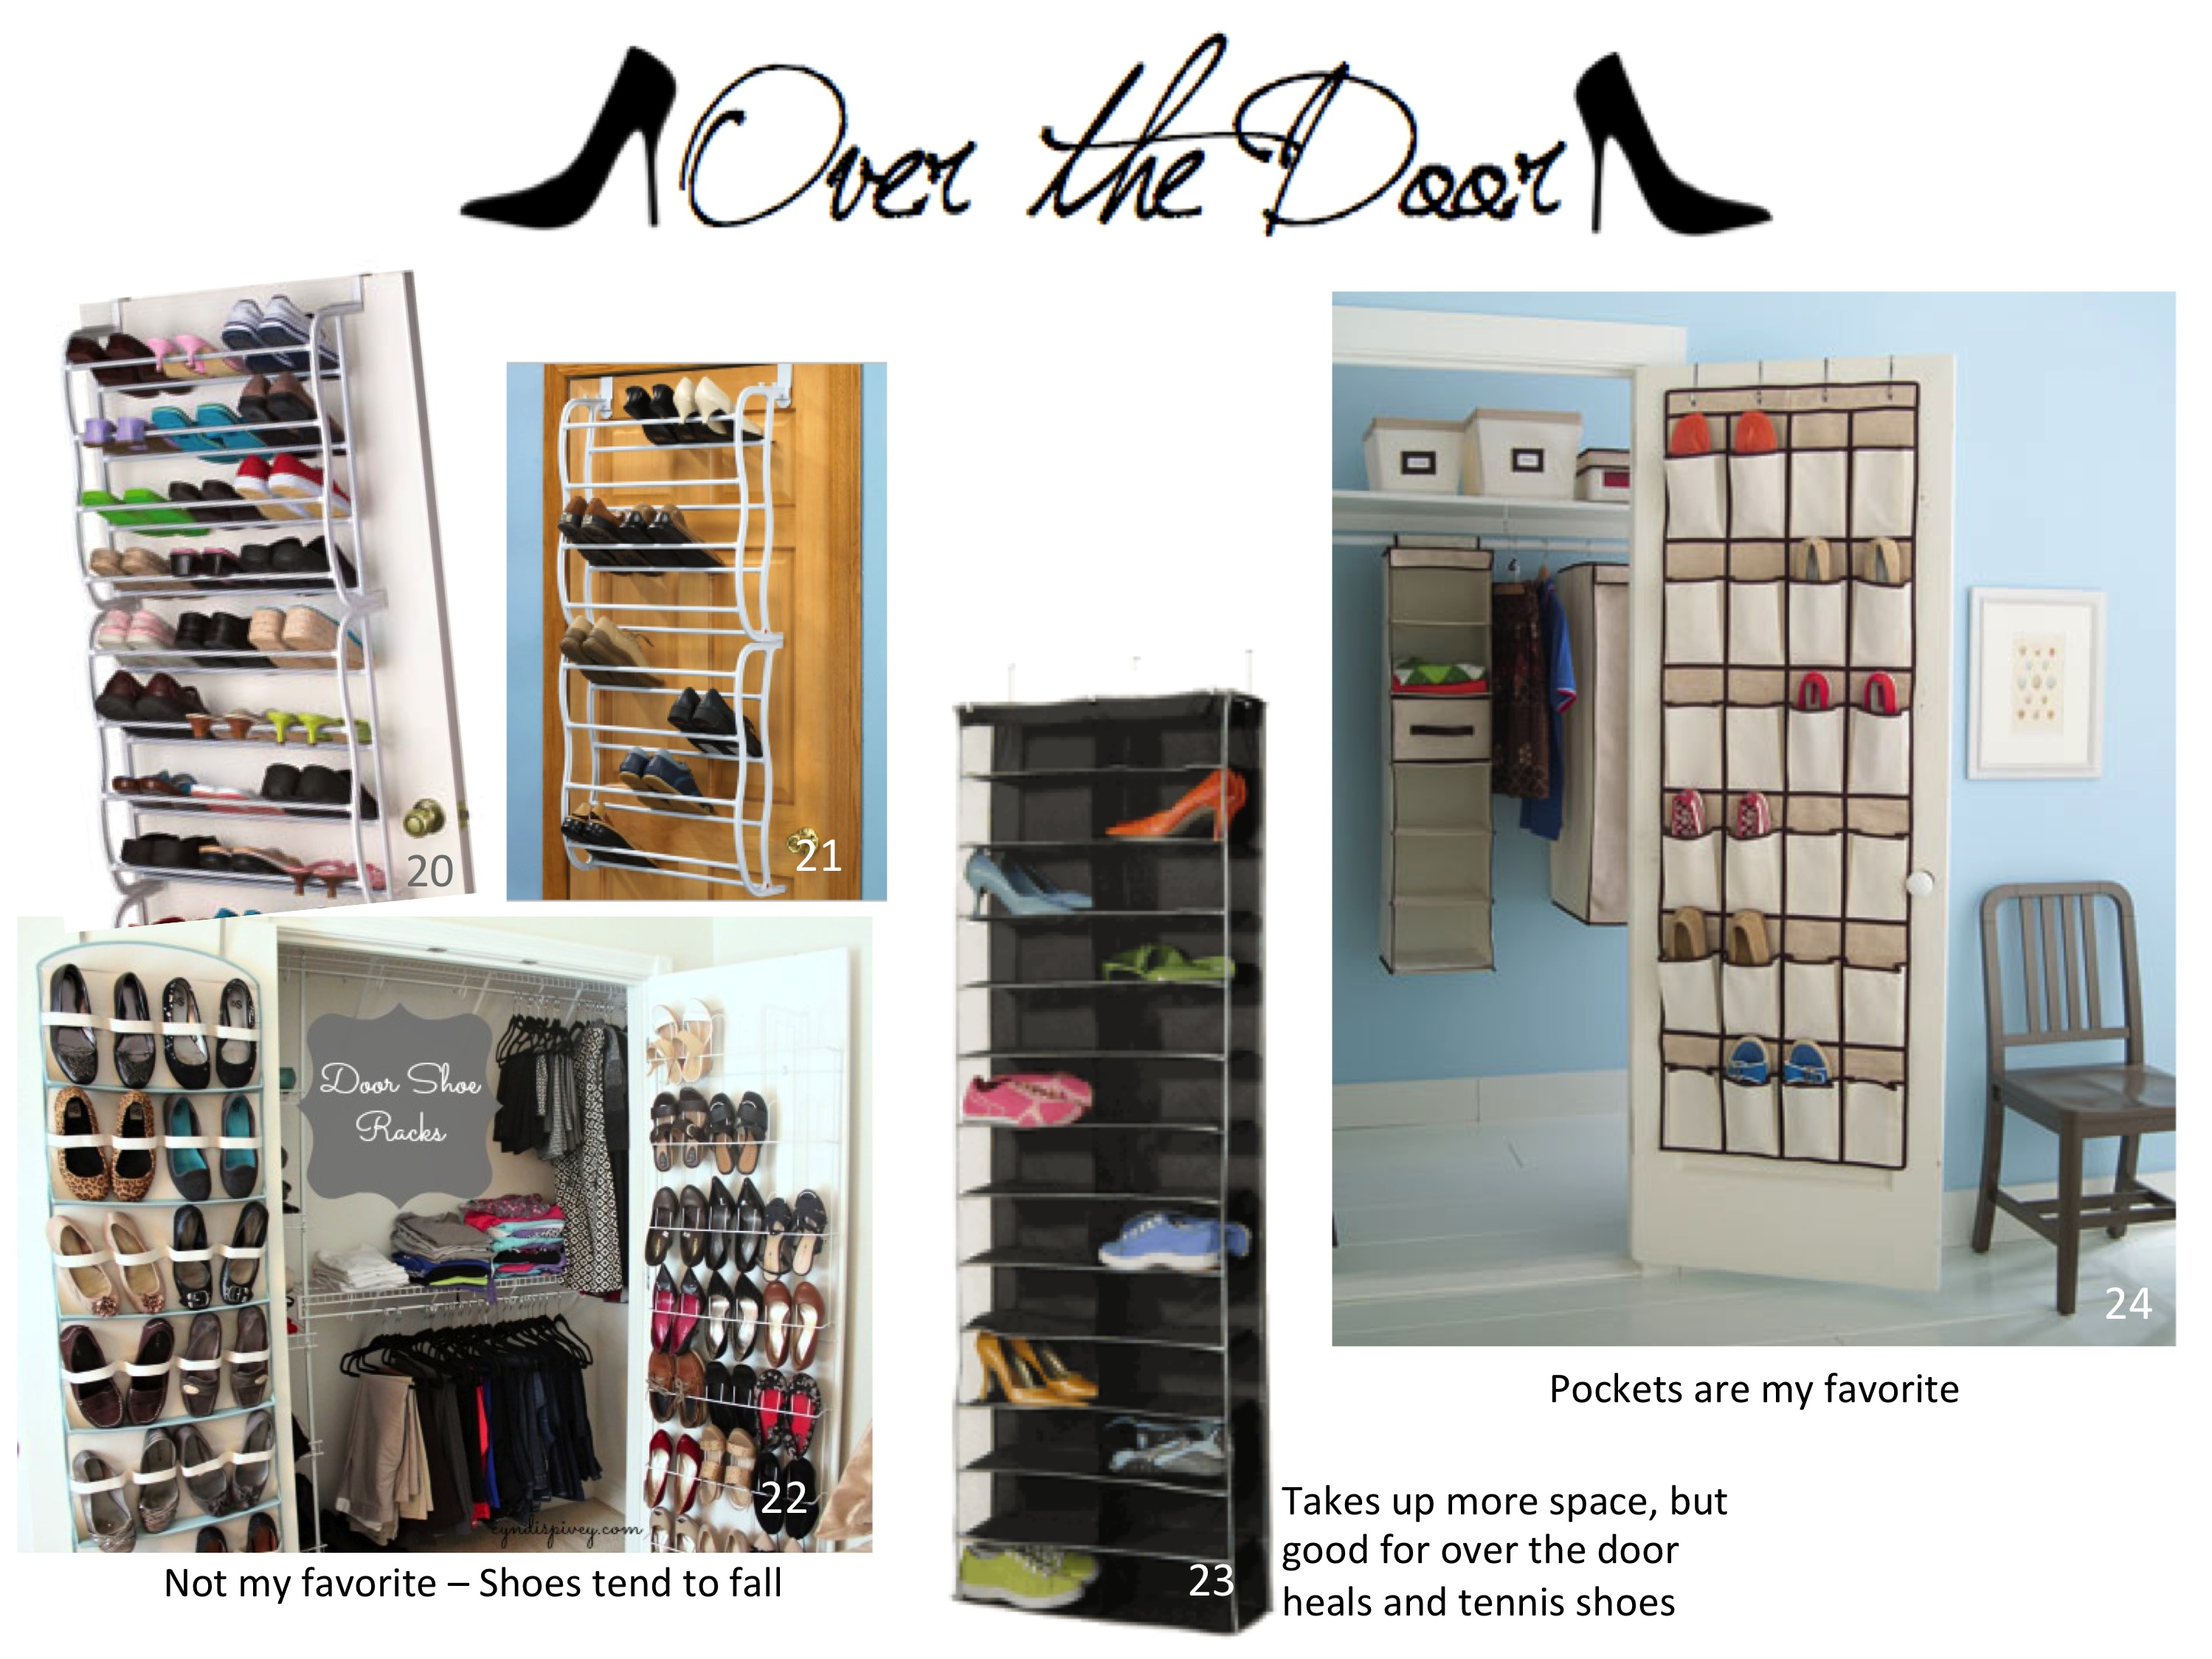 hgtvcom hgtv rend kelleysdiy storage patrick brian rack space small flynn closet organizing with blogger doors original shoe